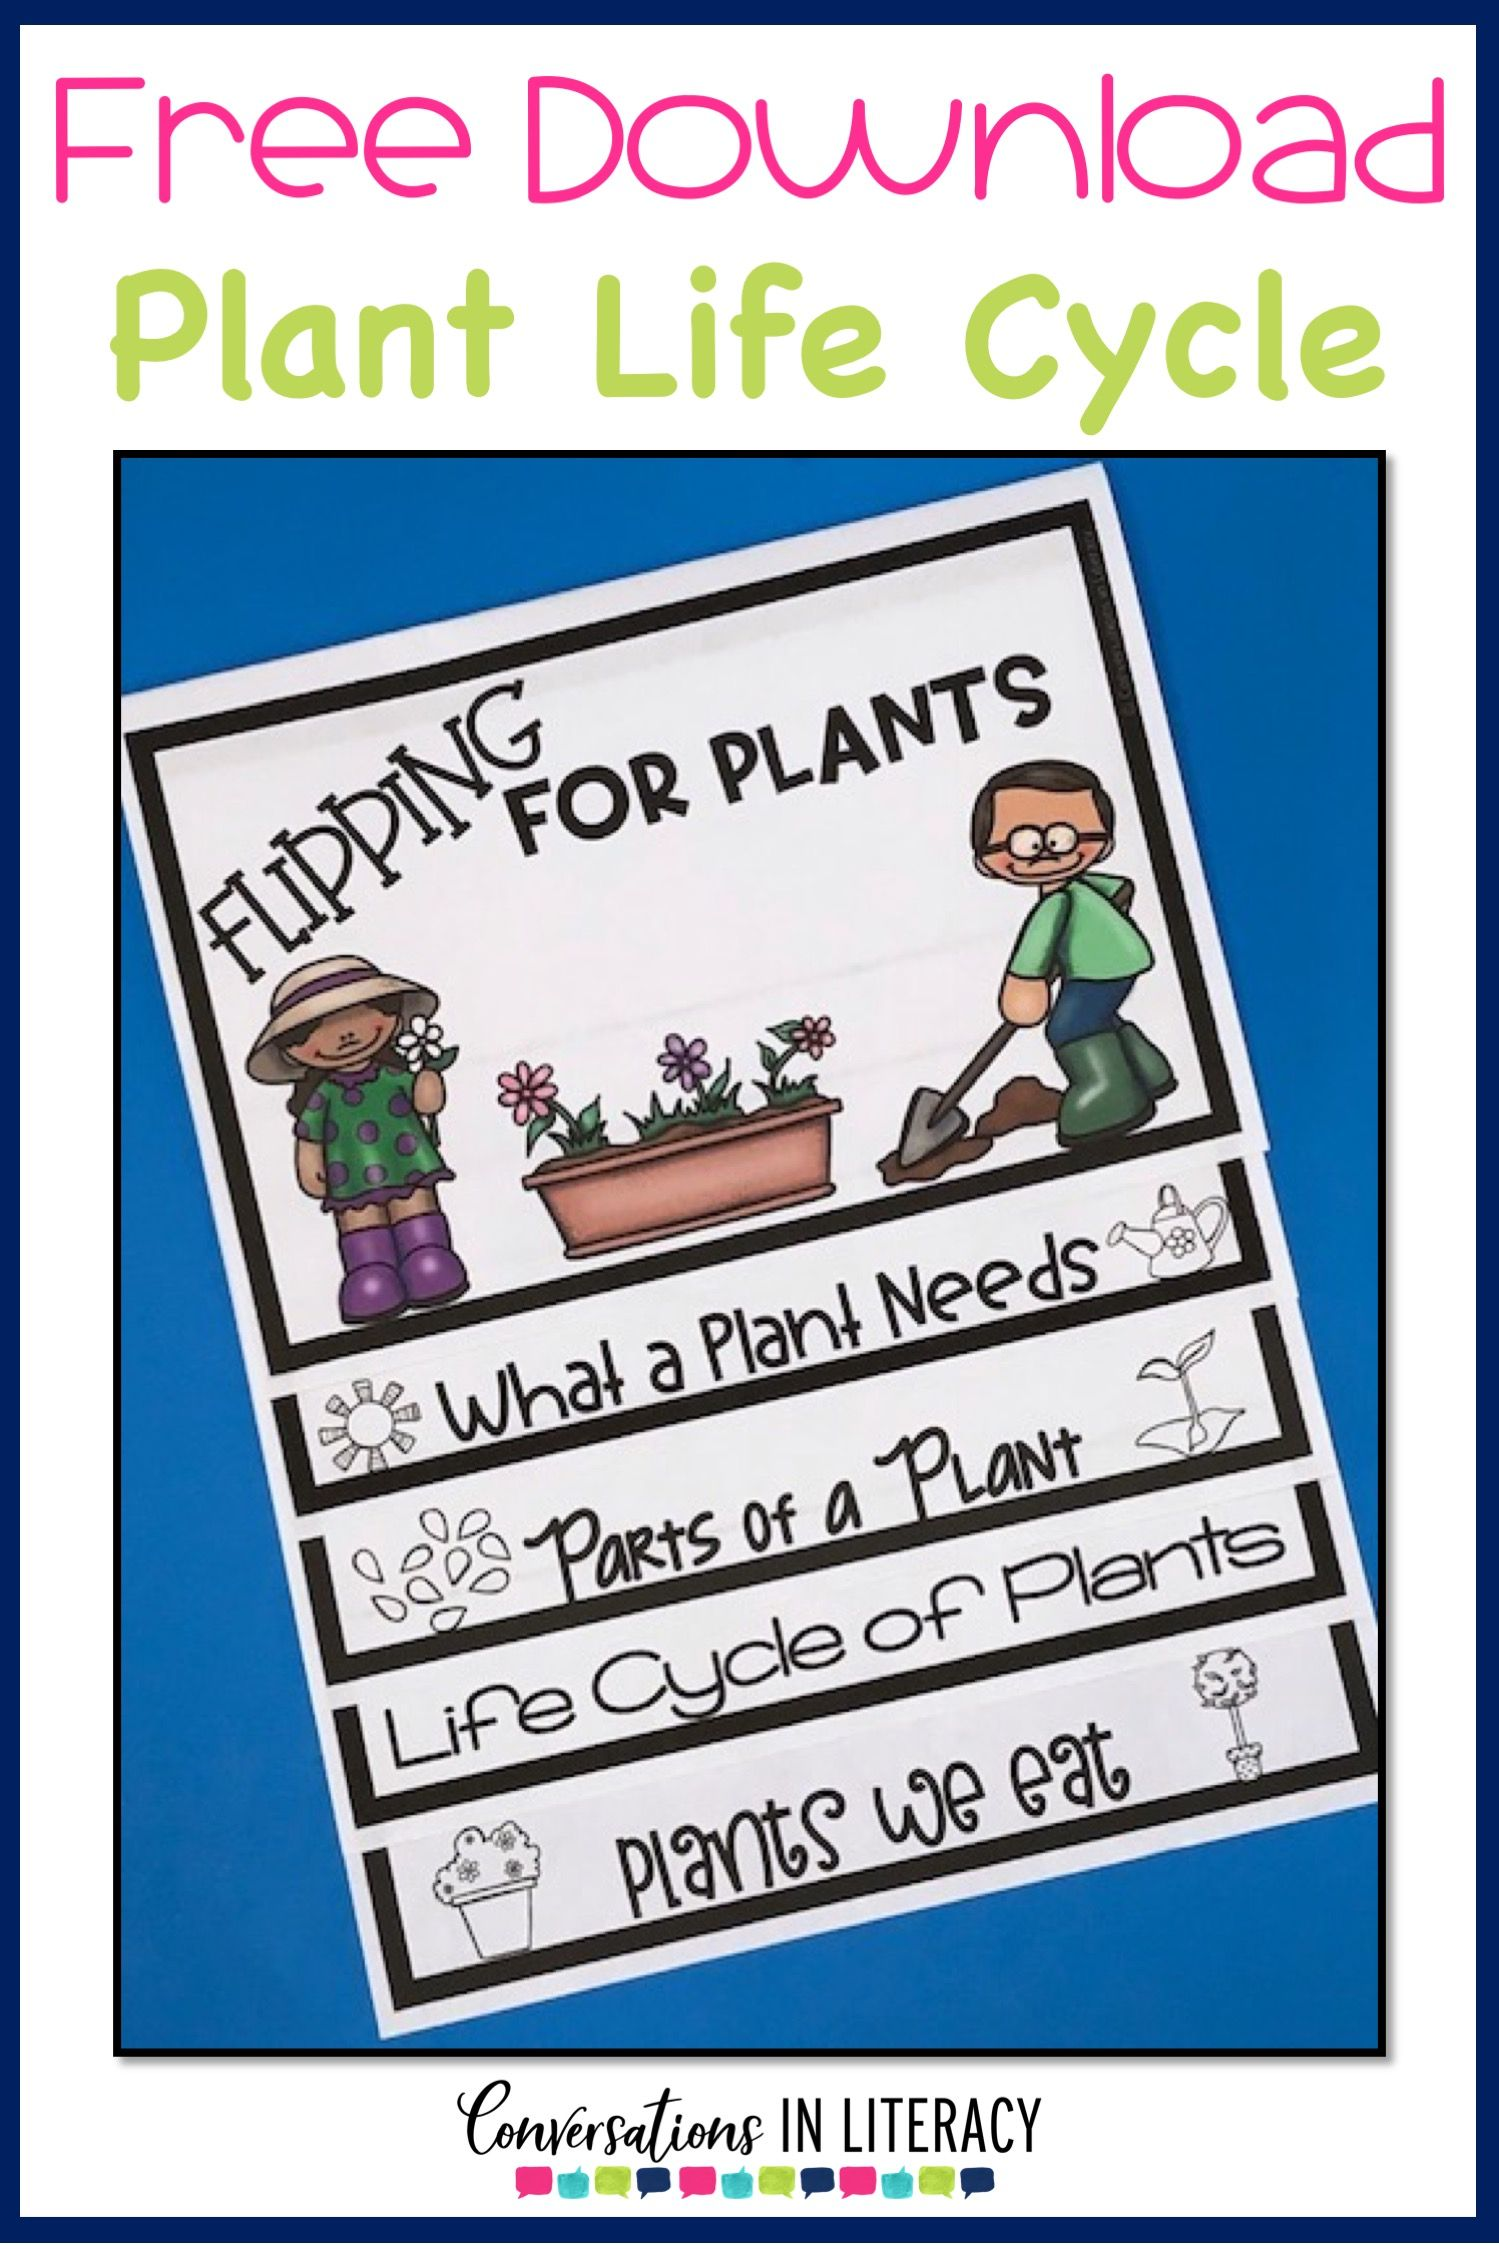 Free Plant Life Cycle Flip Book Printable Plant Life Cycle